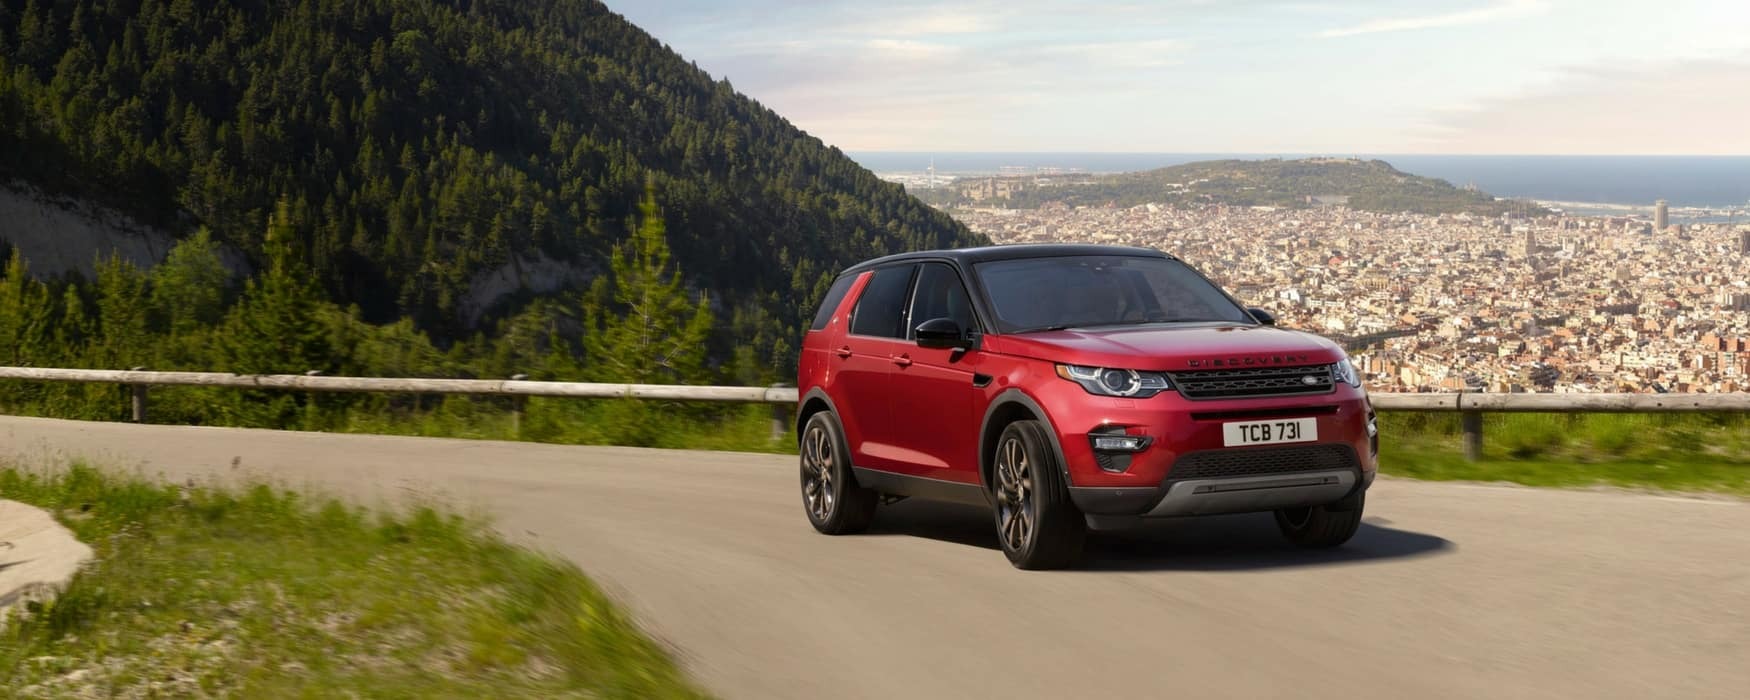 2018 Land Rover Range Rover Discovery Sport